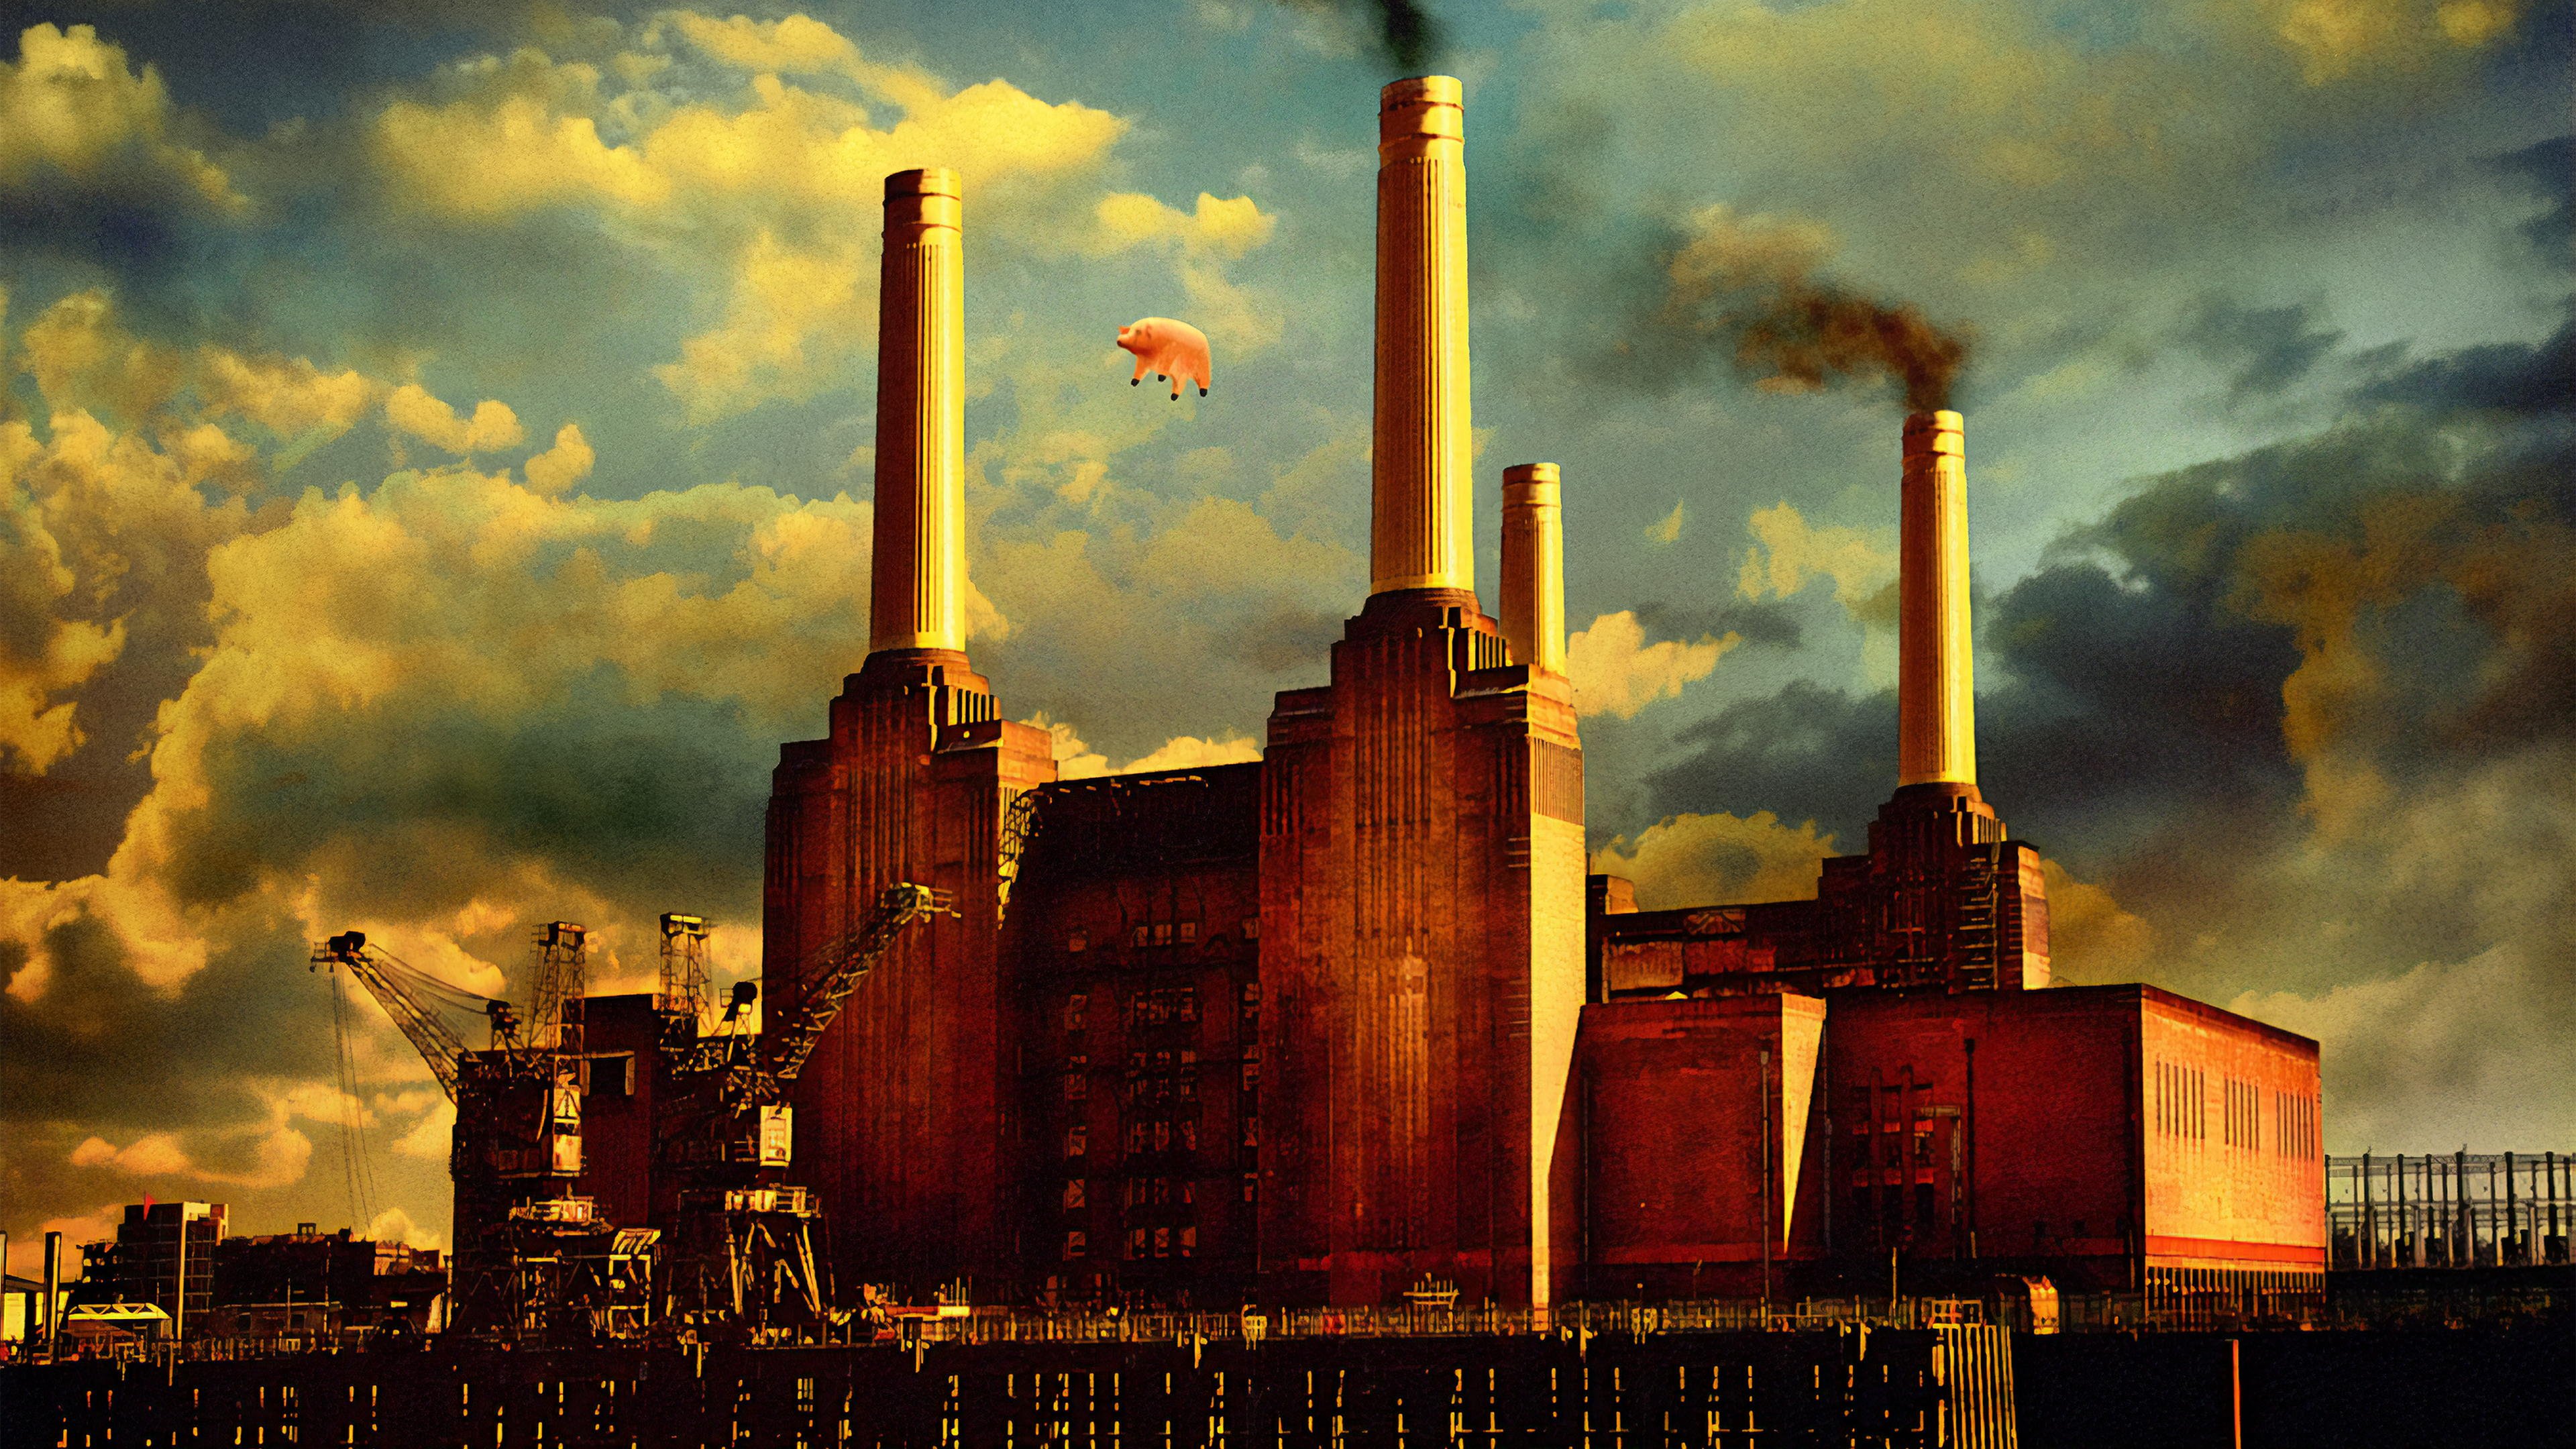 Pink Floyd Animals (Portside) [3840x2160] (With images